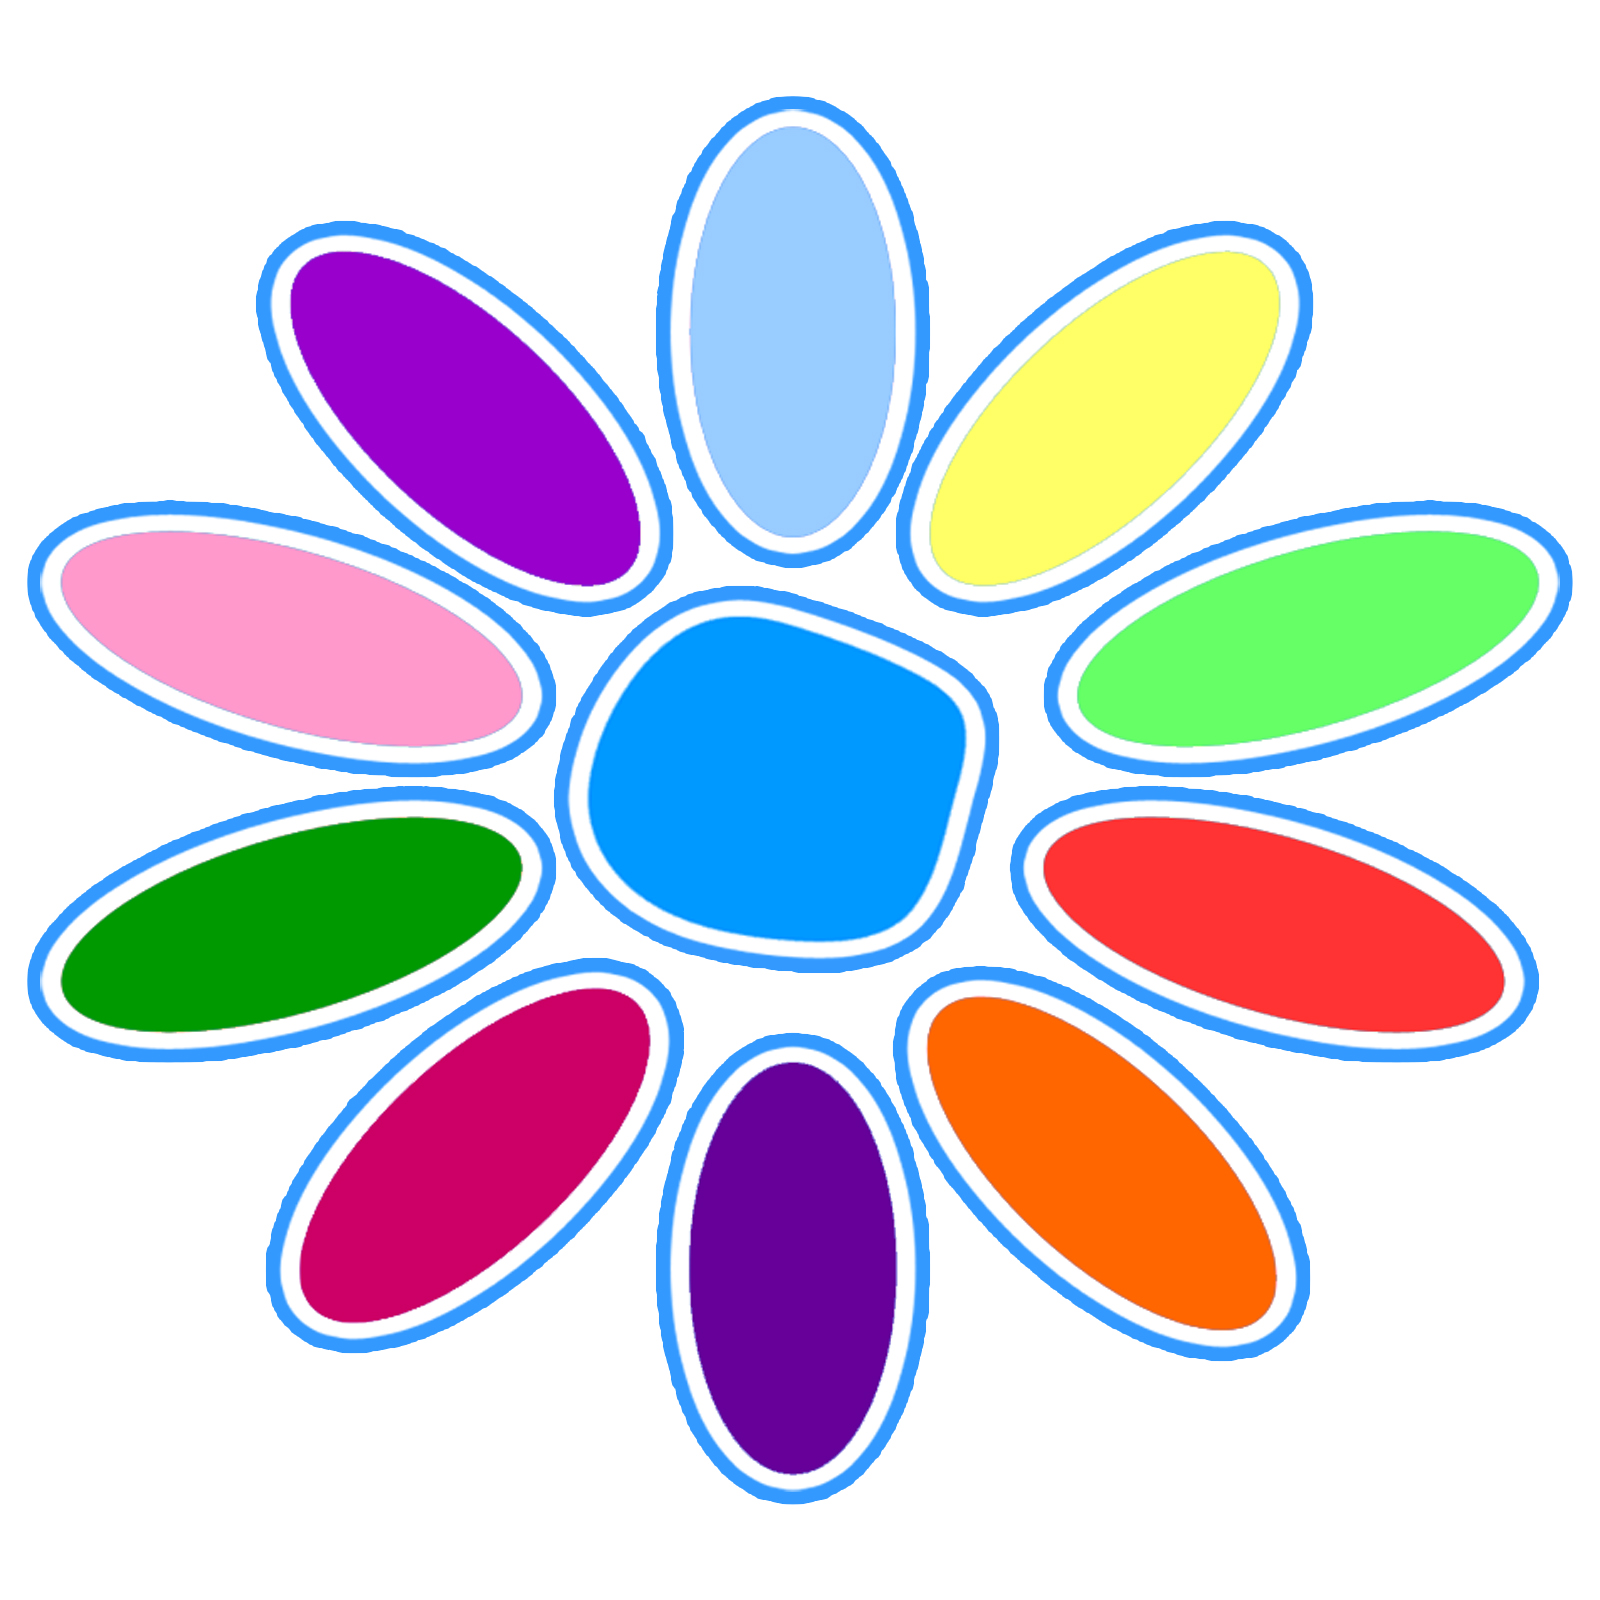 Daisy clipart daisy petal. Girl scout png hd